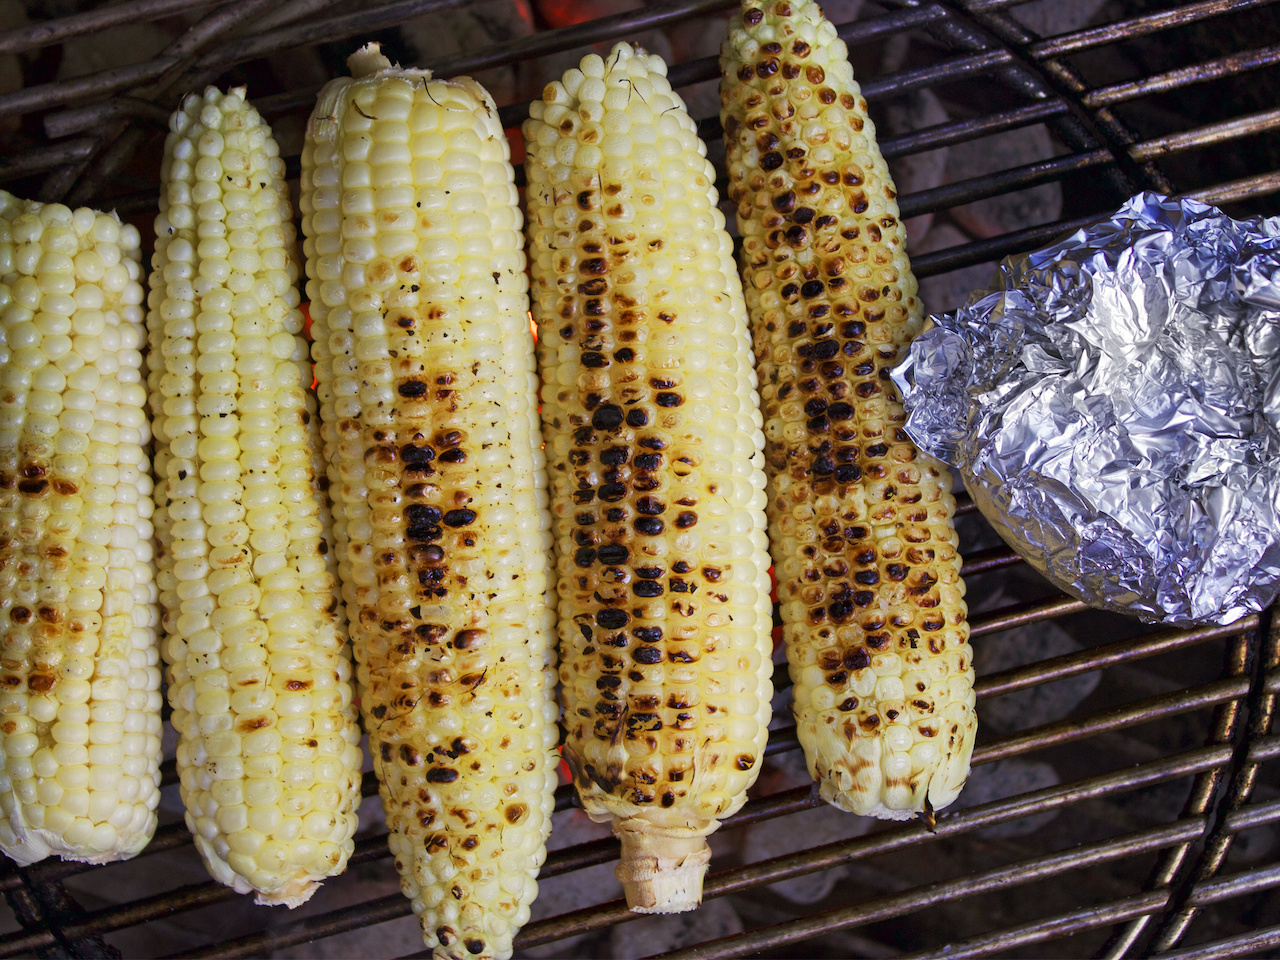 Grill your corn, either in the husk or without.